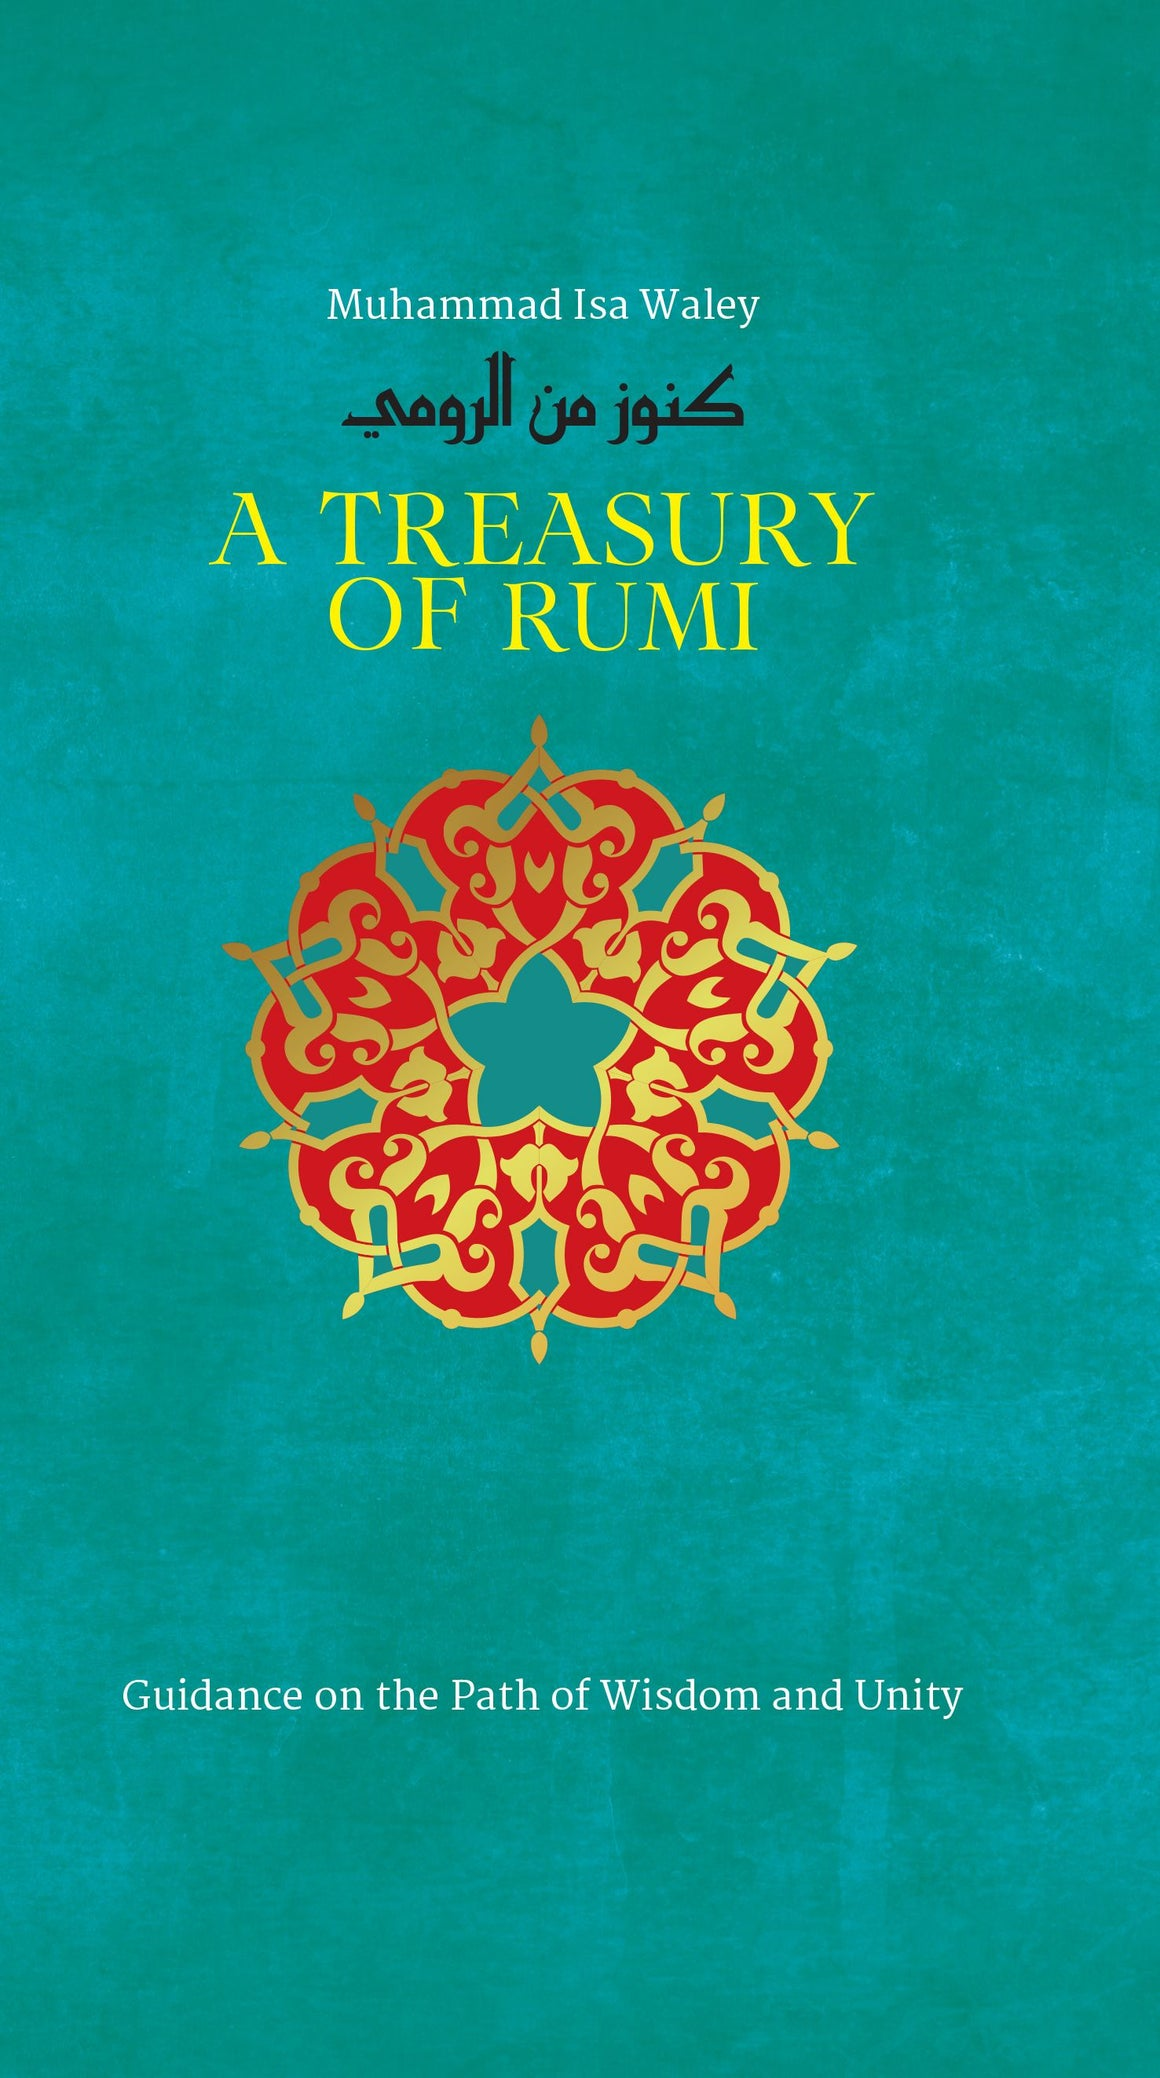 A Treasury of Rumi's Wisdom: Guidance on the Path of Wisdom and Unity by by Muhammad Isa Waley